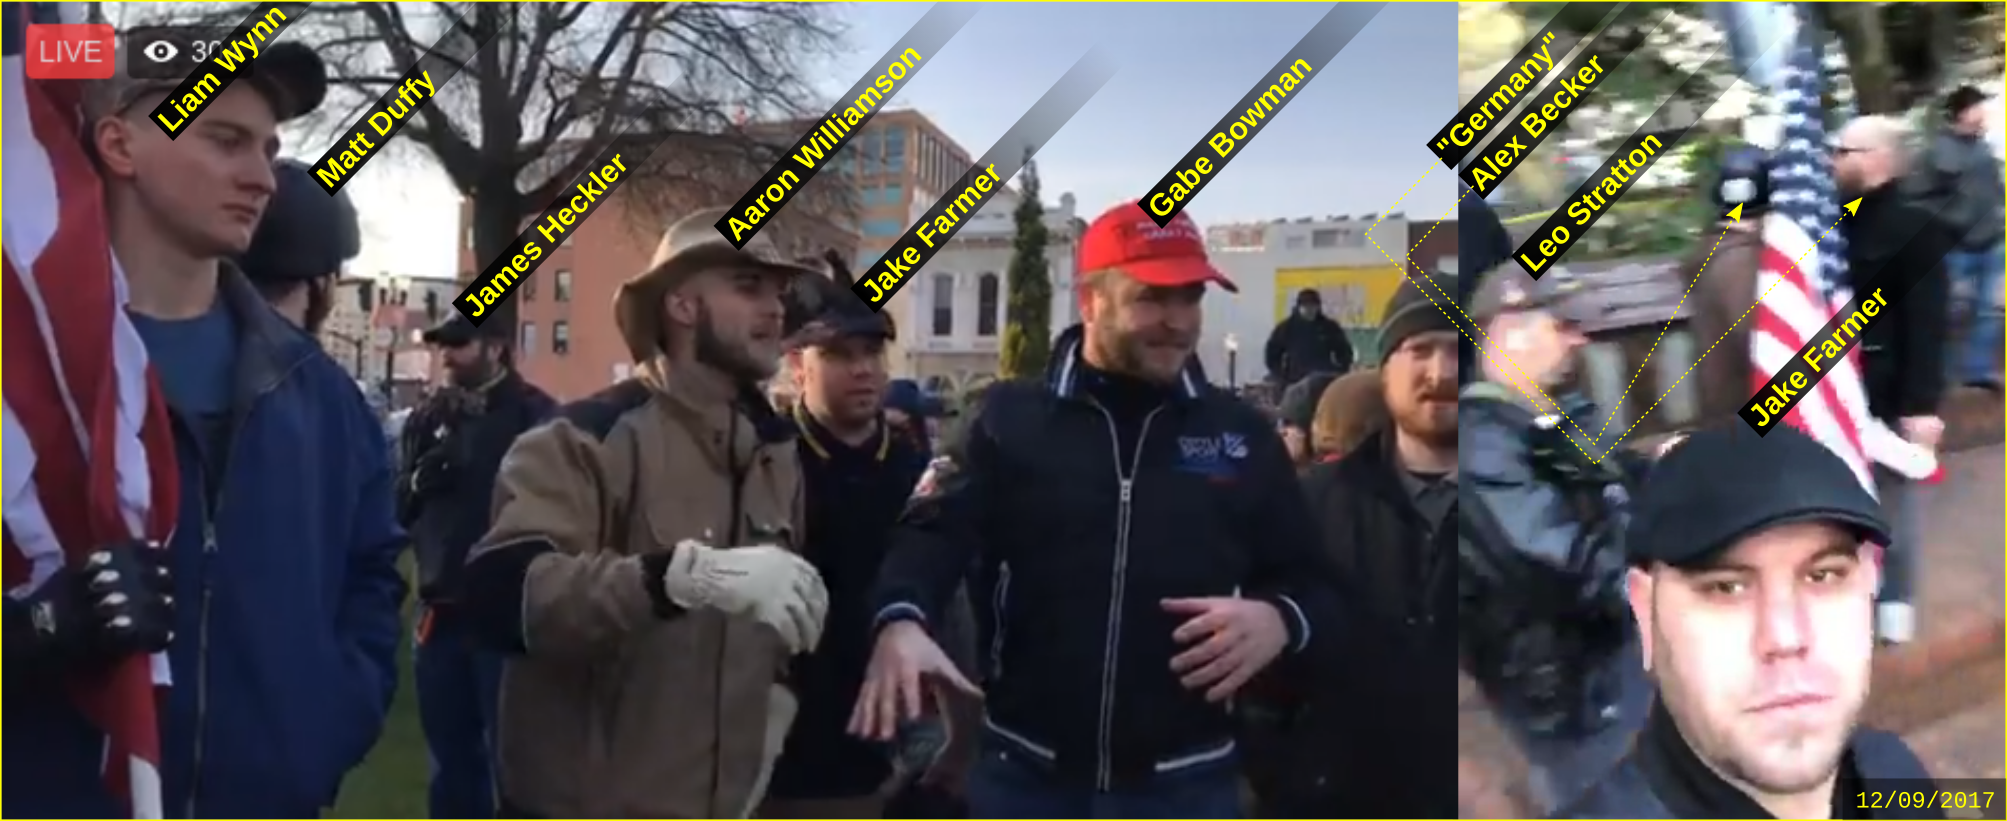 Jake Farmer at an anti-immigrant hate rally